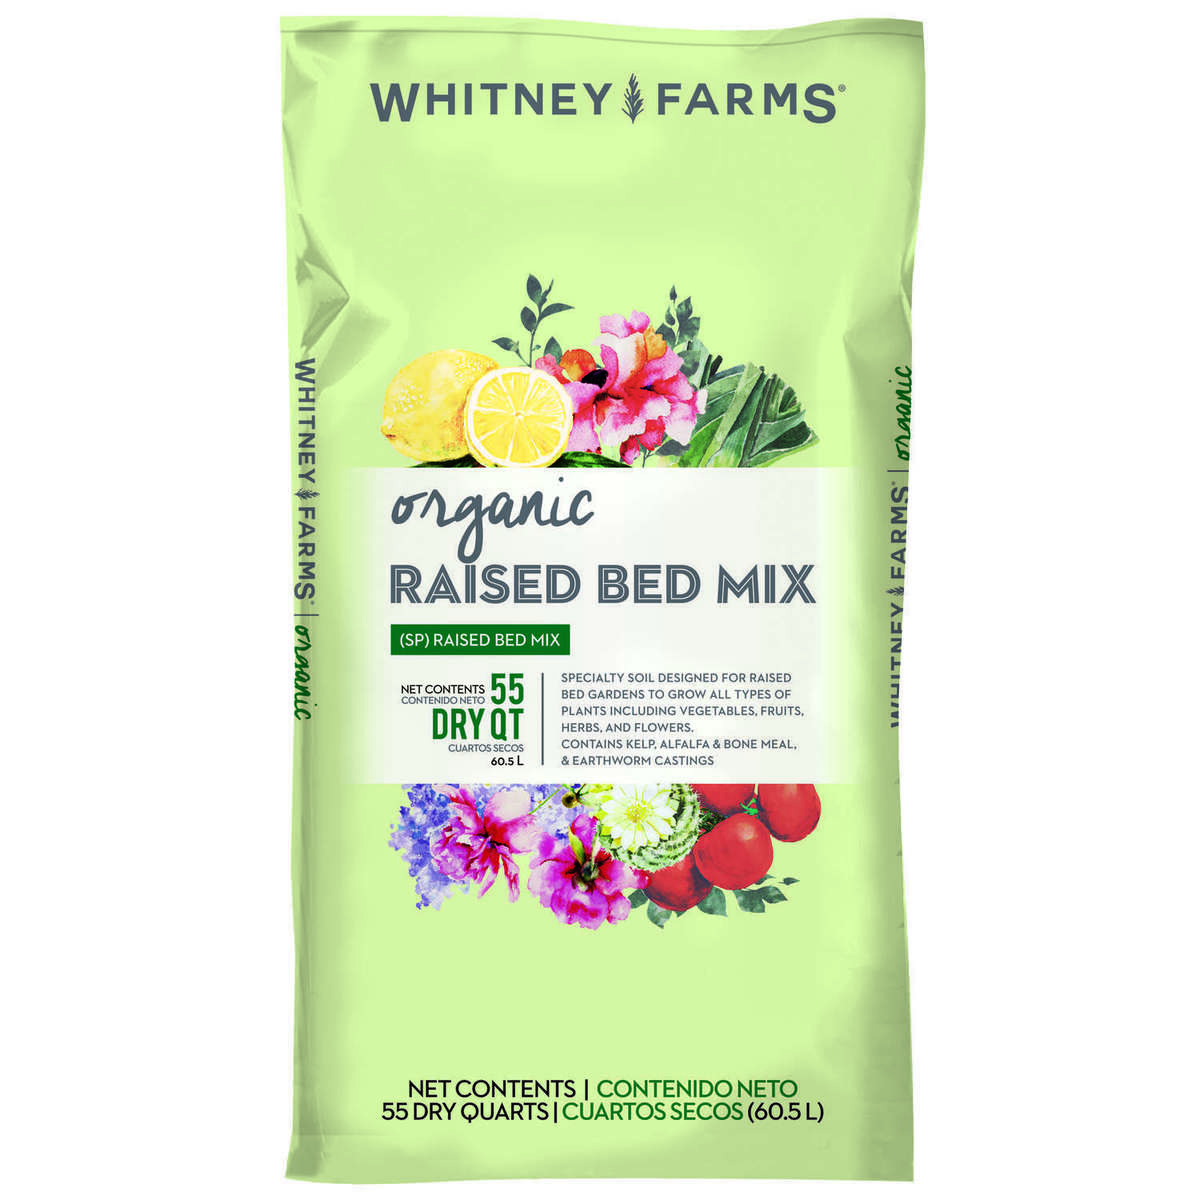 Whitney Farms® Organic Raised Bed Mix, 1.5 Cu. Ft. thumbnail